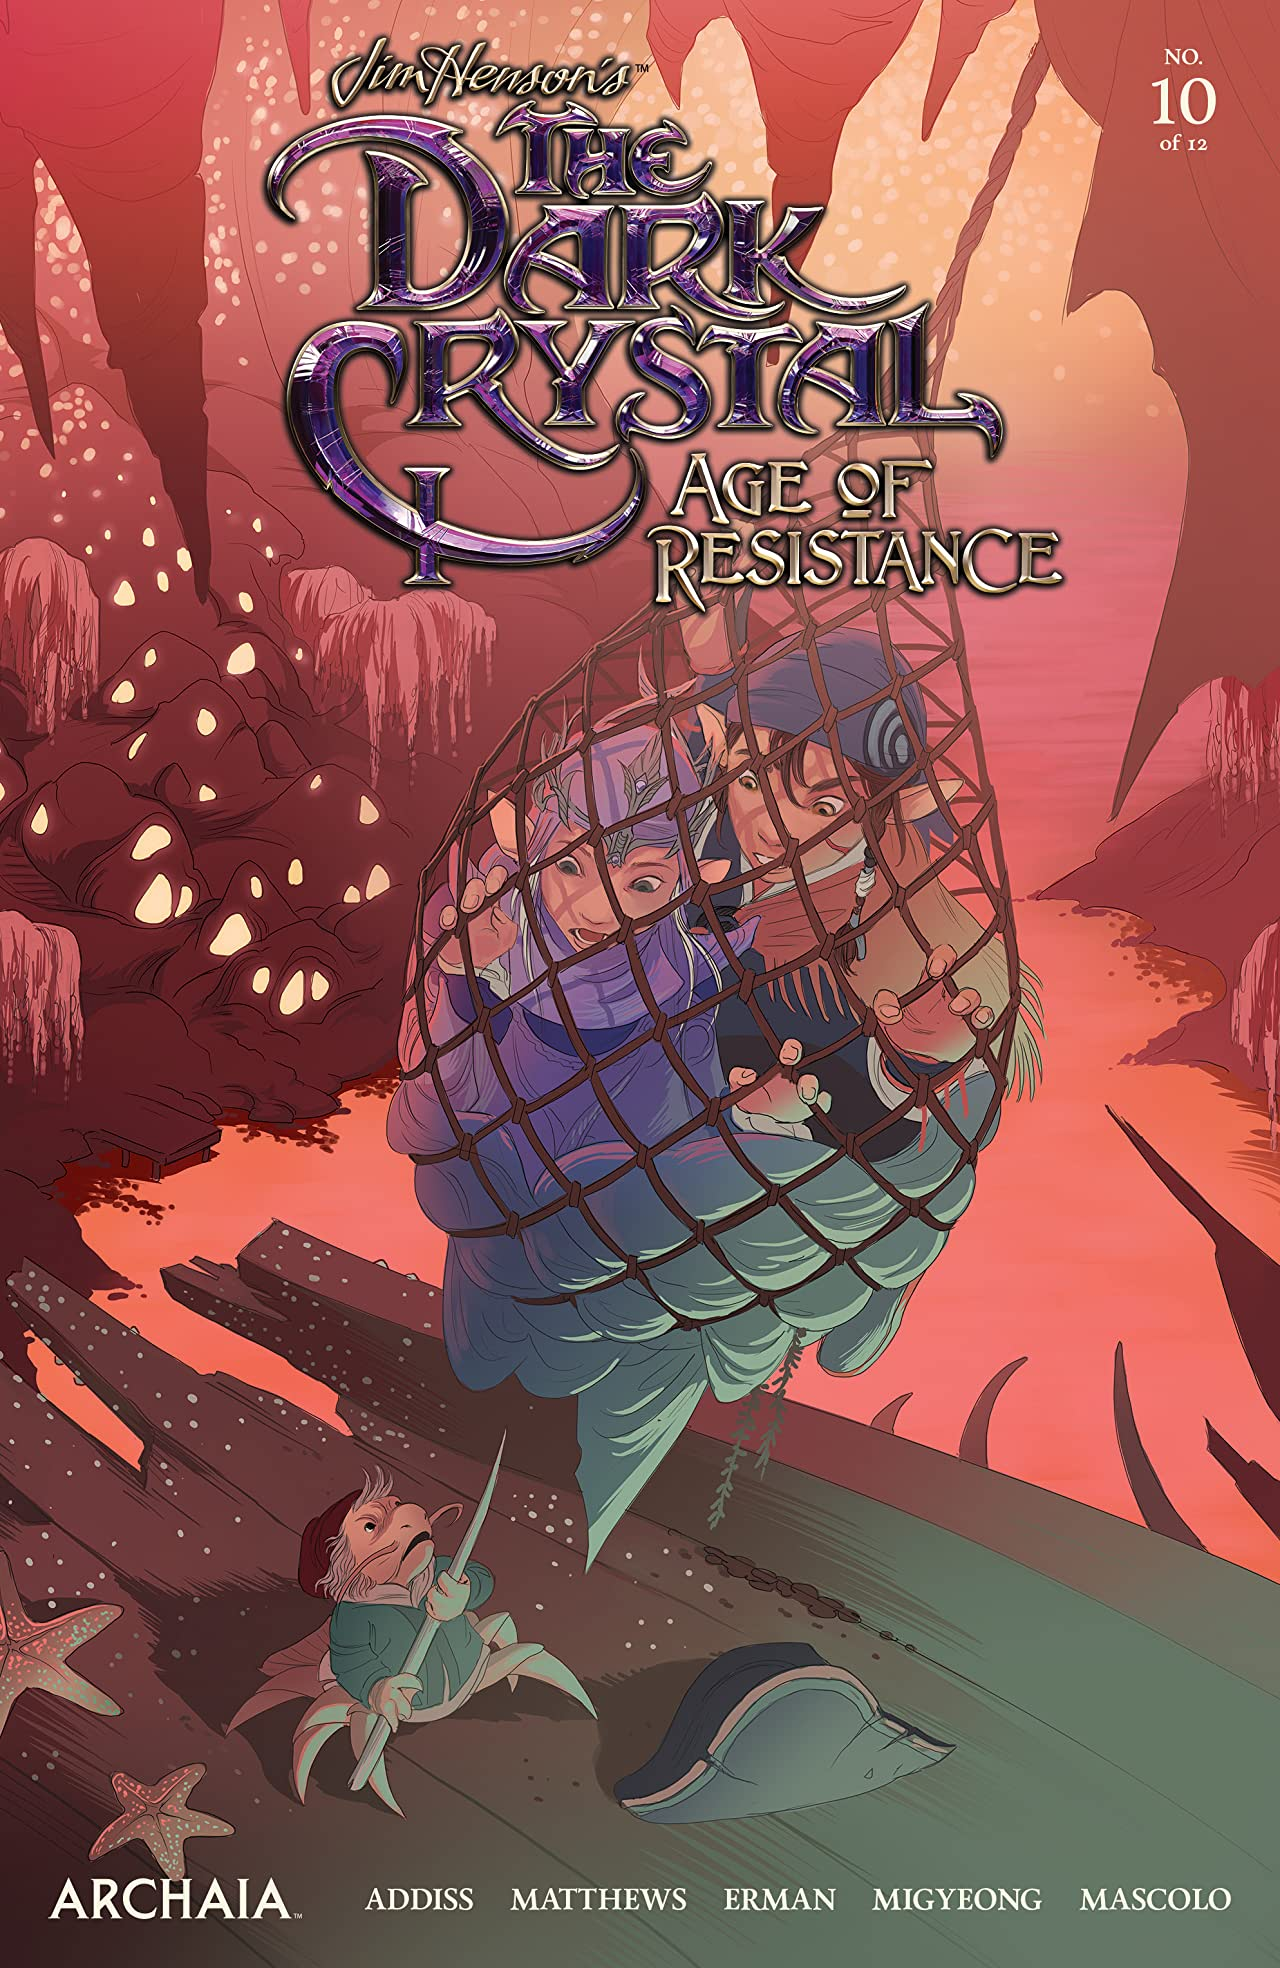 Jim Henson's The Dark Crystal: Age of Resistance #10